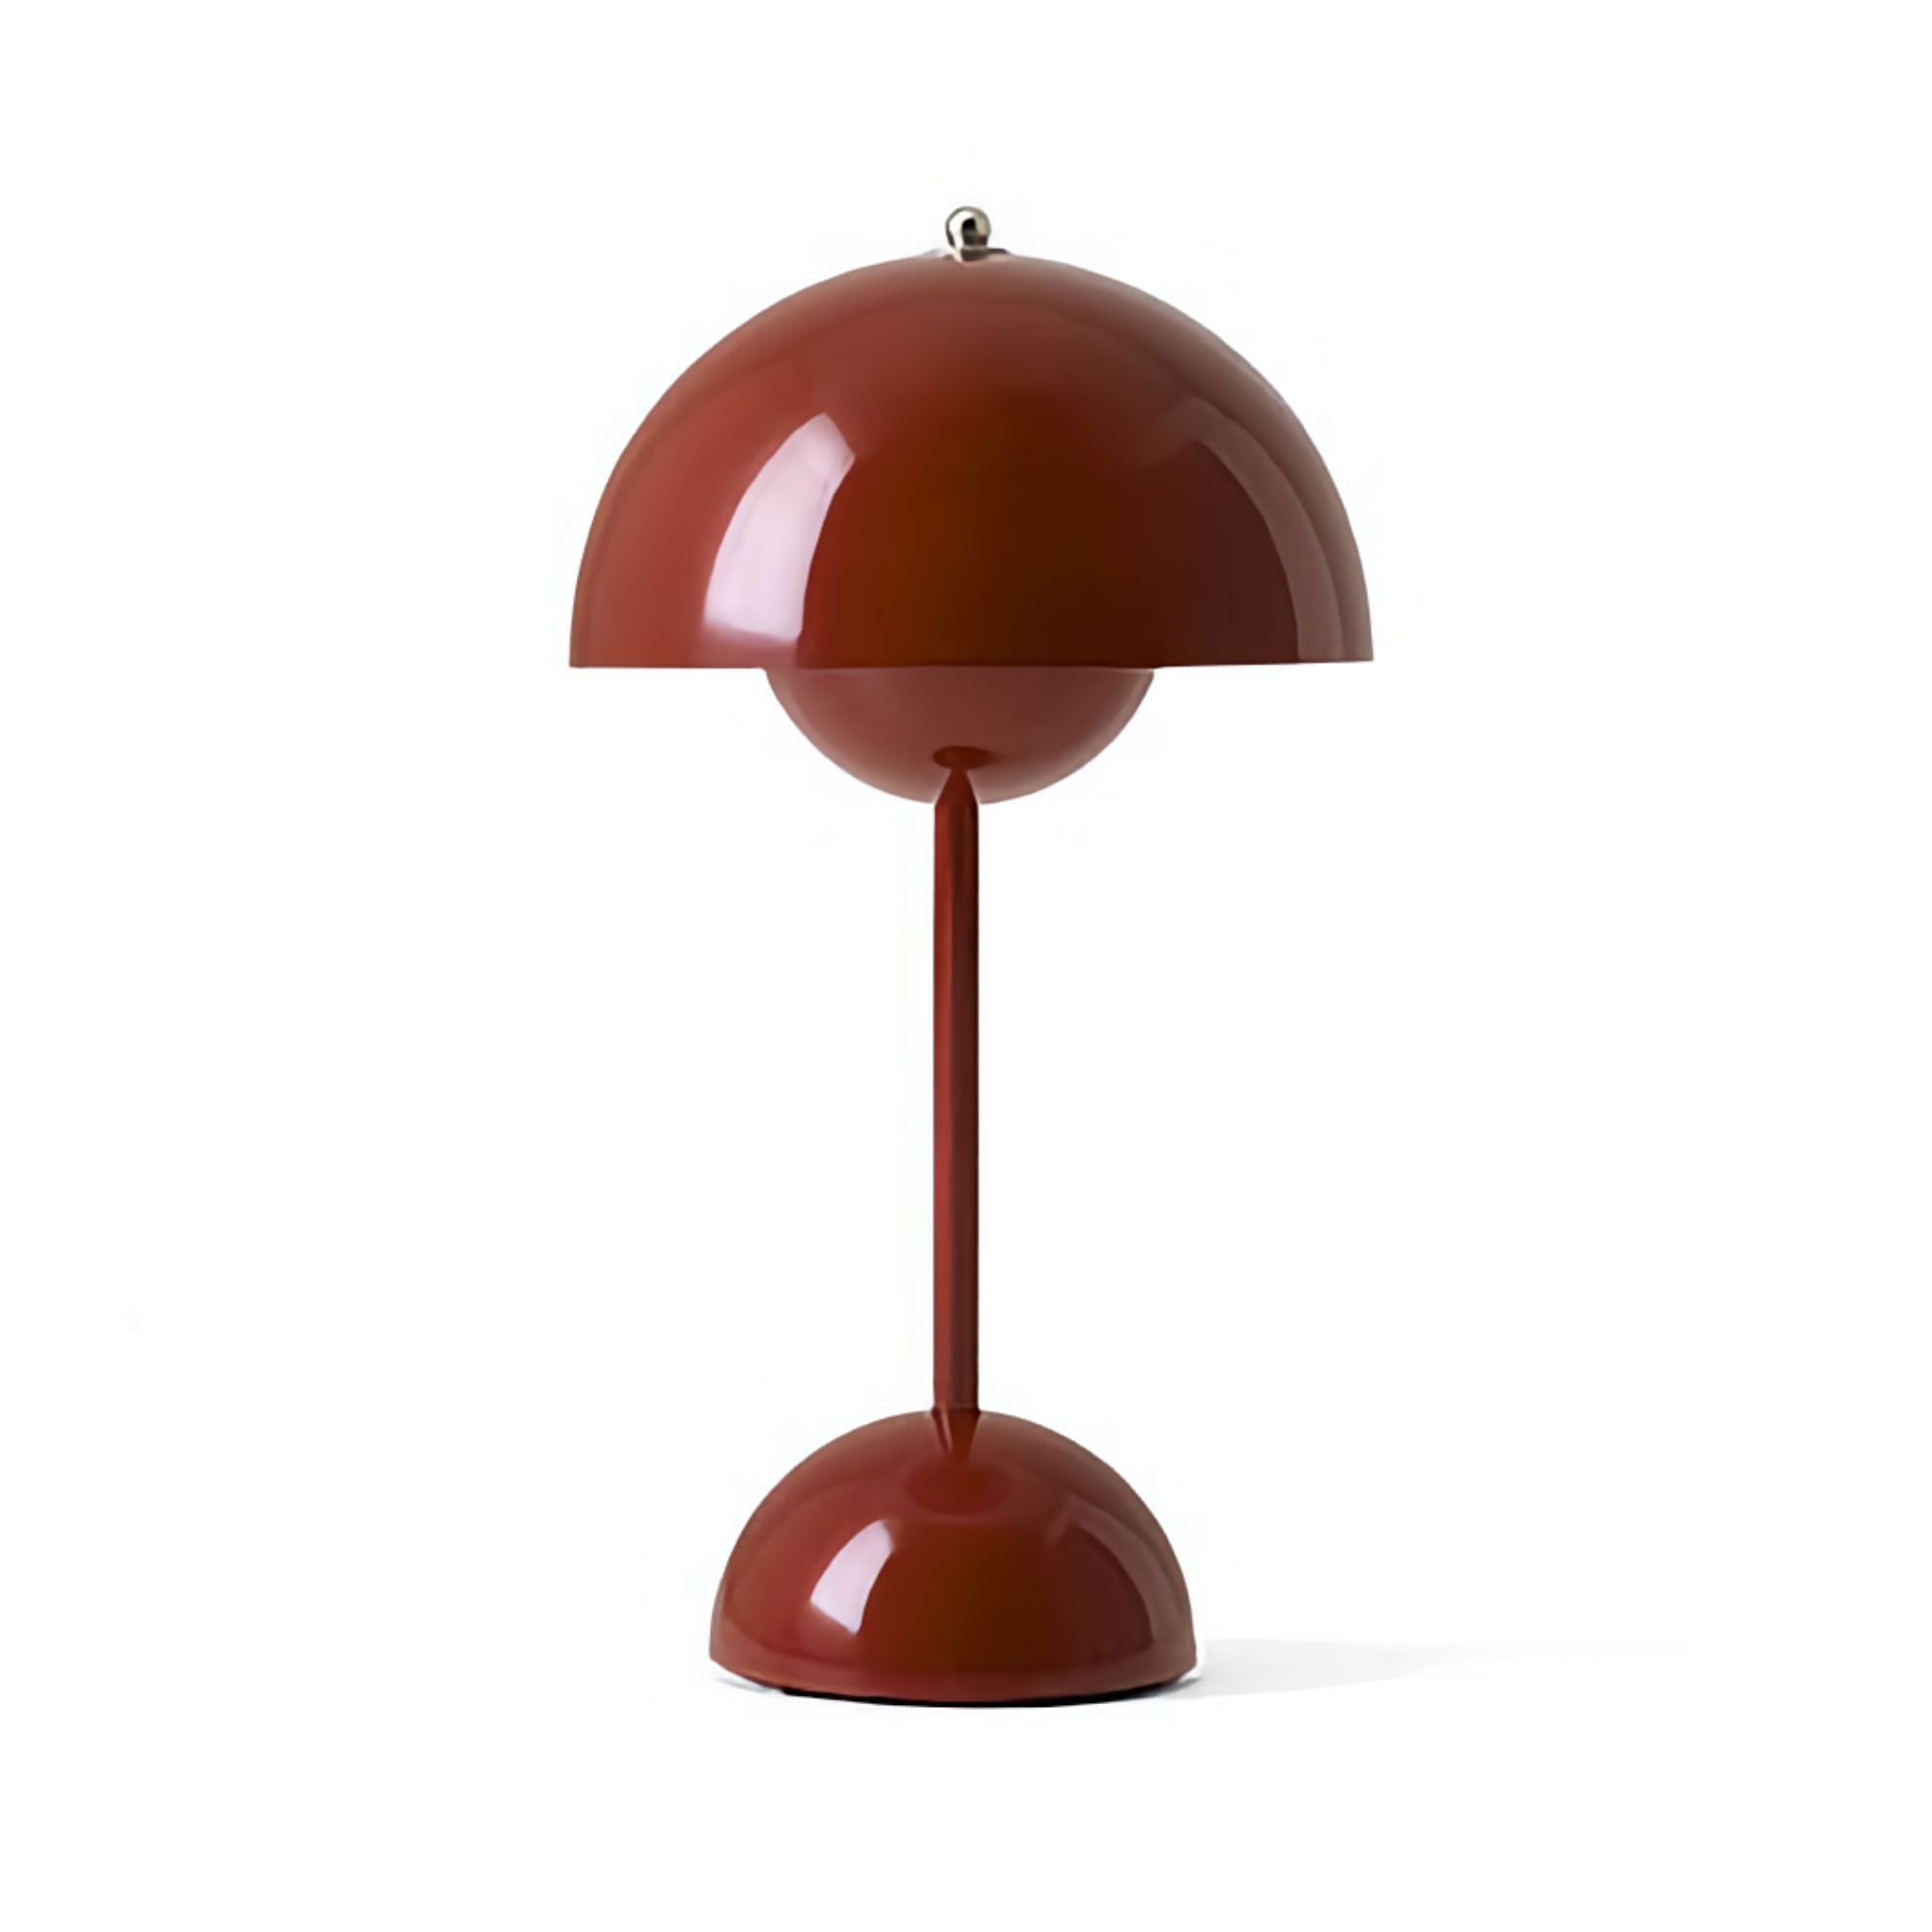 &Tradition VP9 Flowerpot Rechargeable Lamp , Red Brown